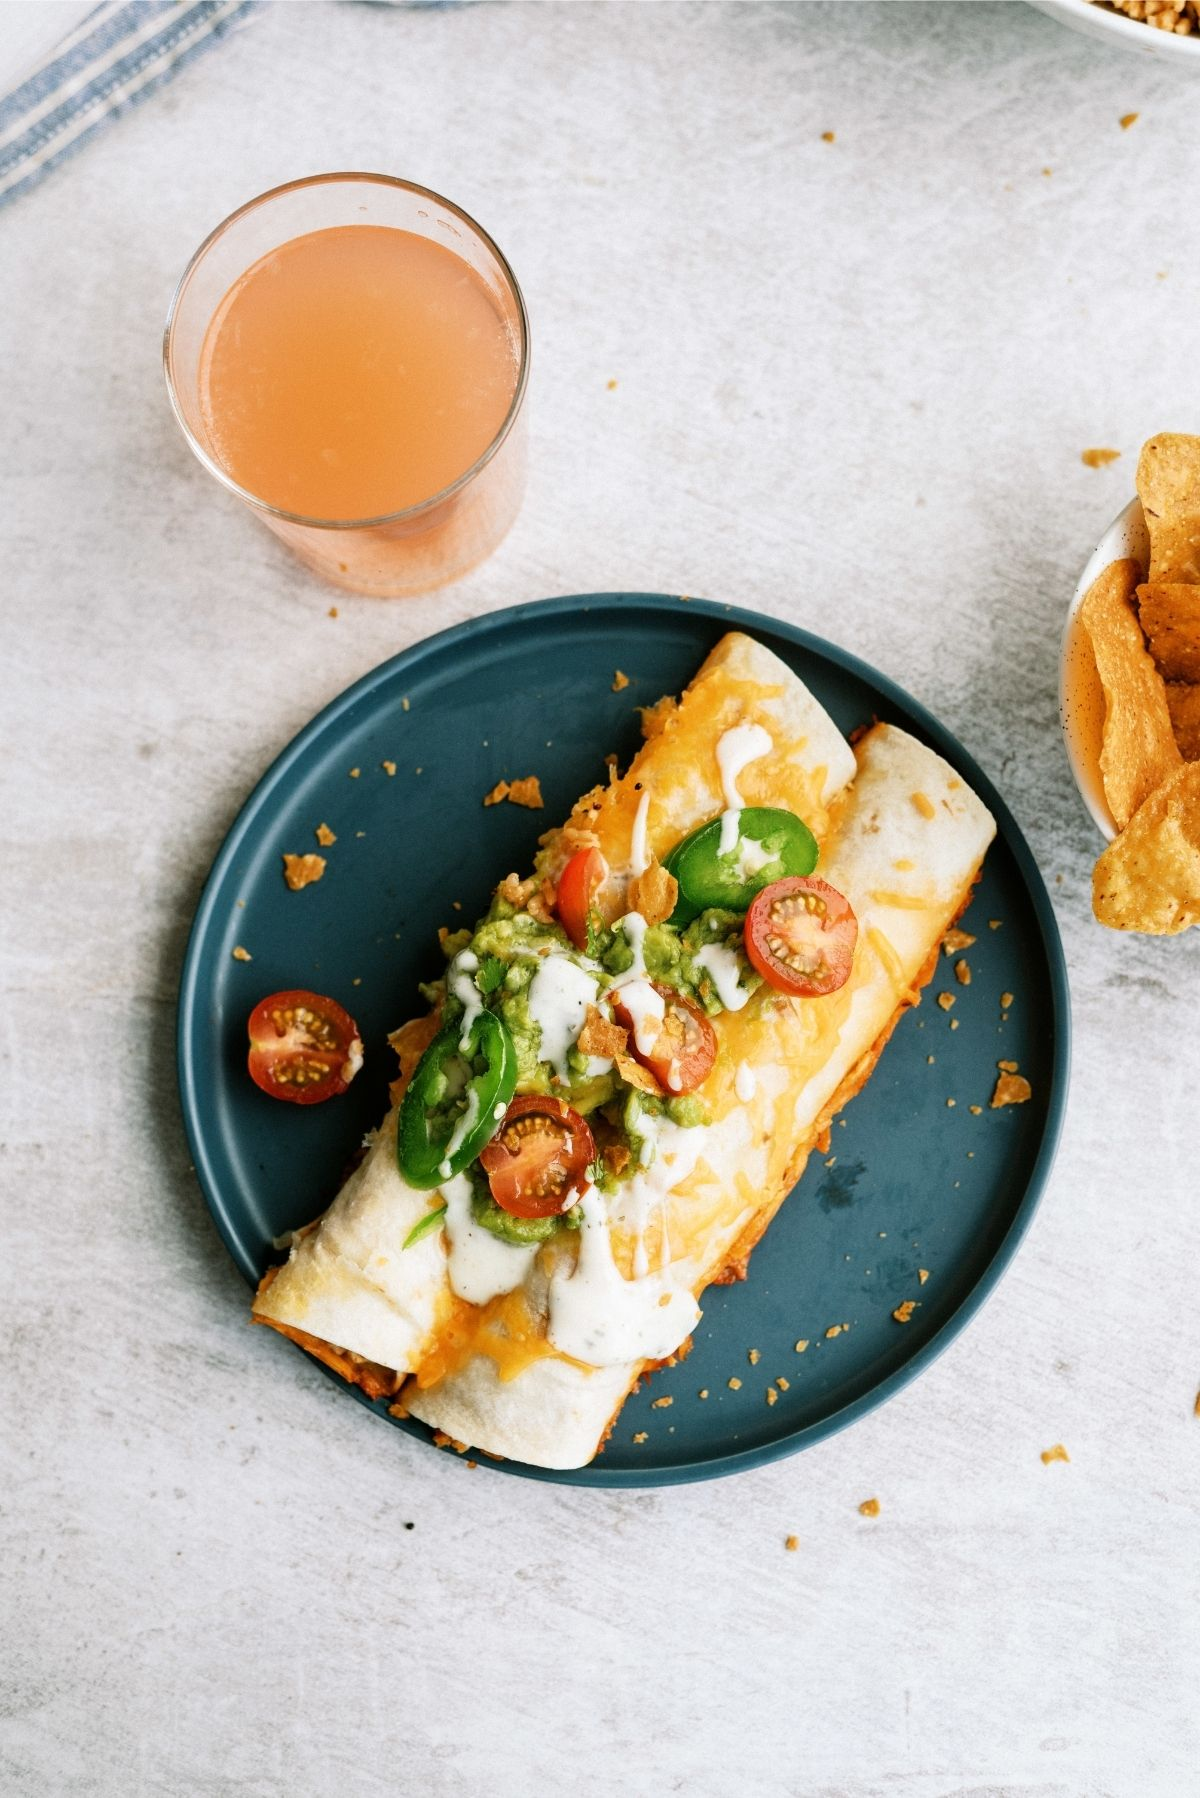 Slow Cooker Ranch Chicken Enchiladas on blue plate with a drink